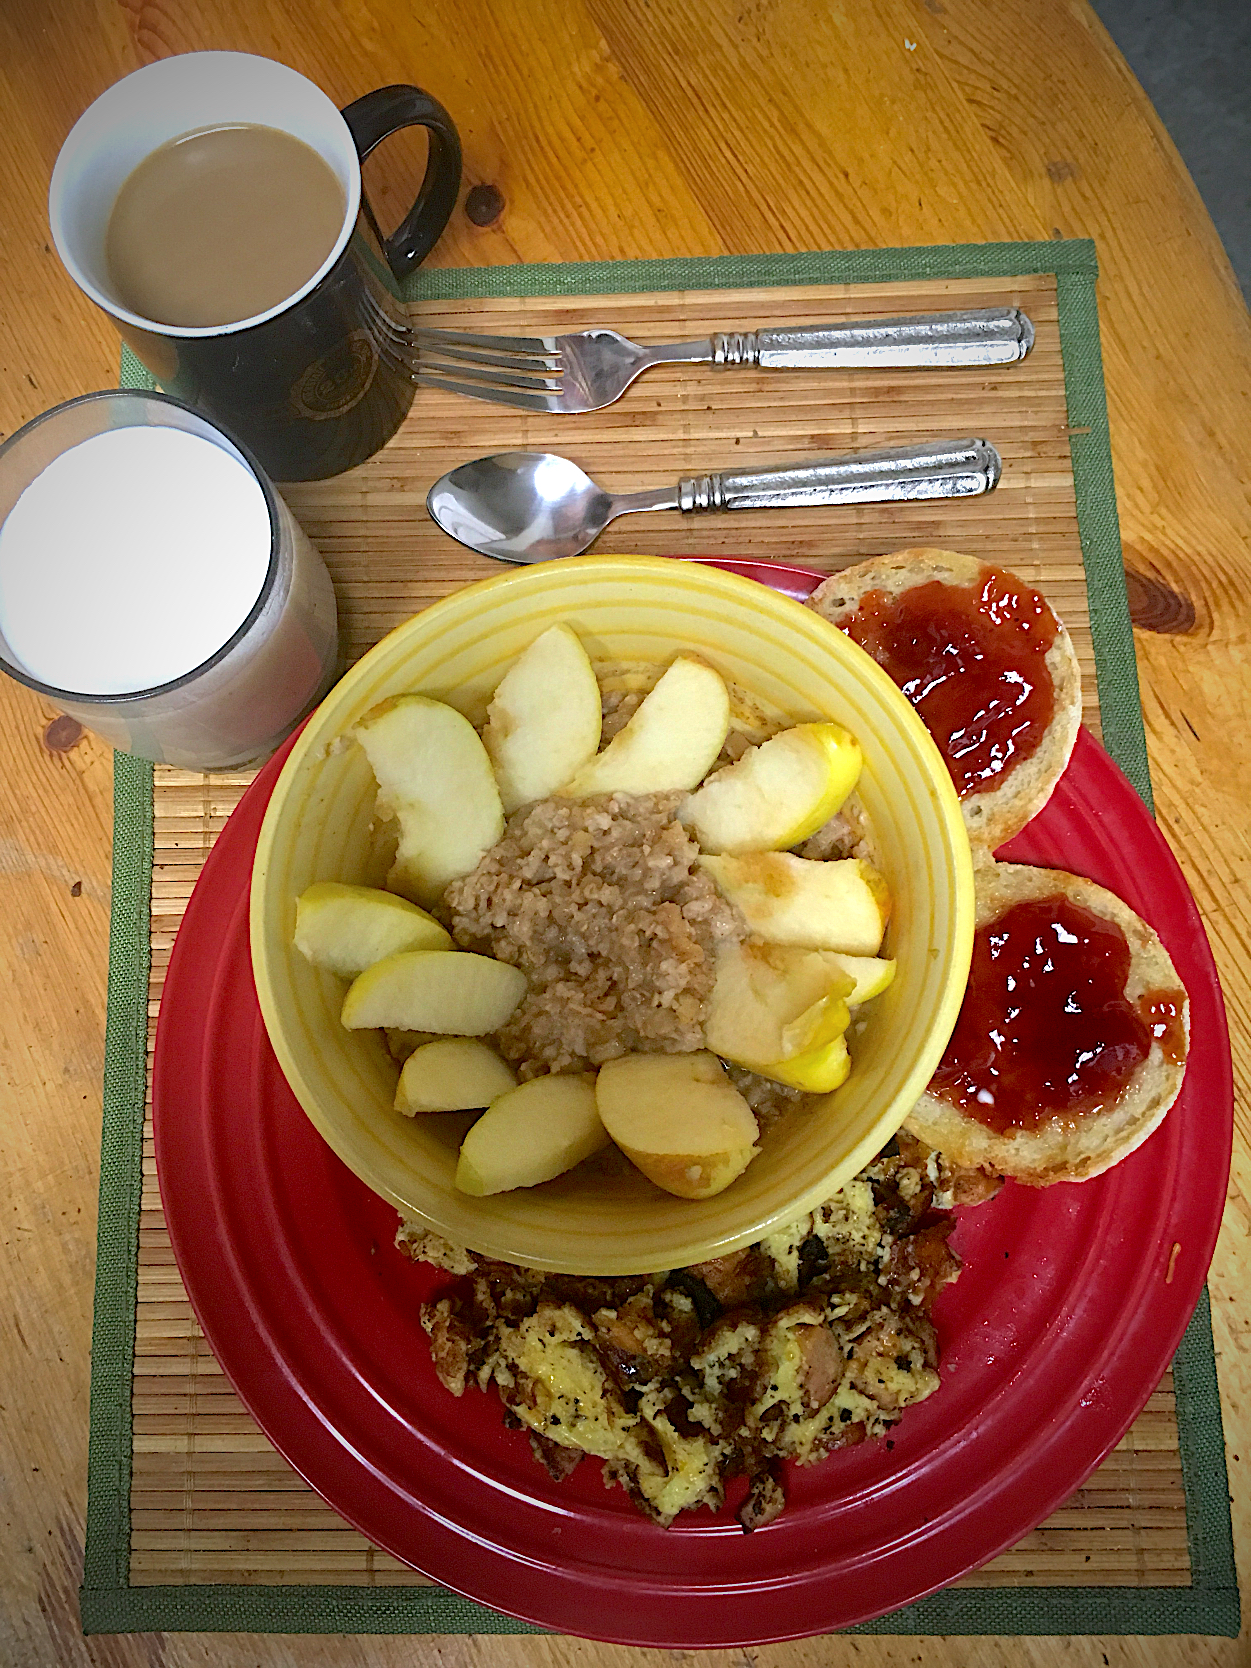 Apple Cinnamon Oatmeal, English Muffin With Margarine, and Strawberry Jam, Scrambled Eggs With Garlic, Black Pepper and Chicken Sausage: Starbucks Blonde Hazeln